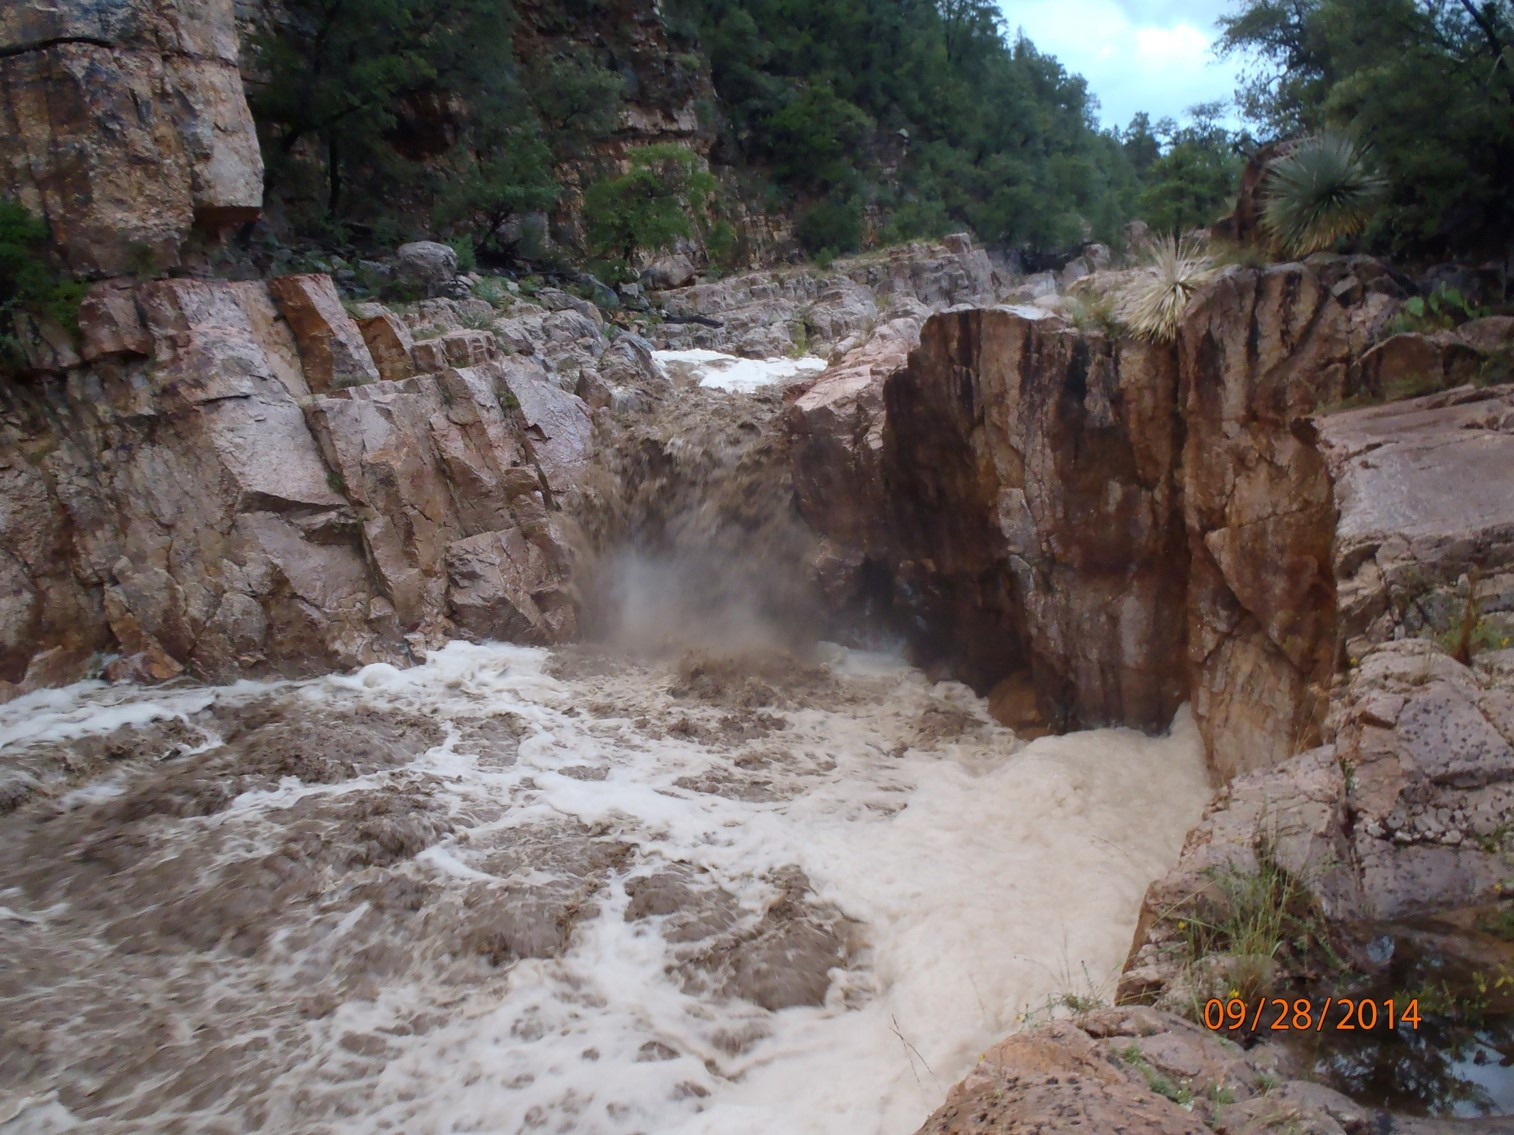 Flash flood in an Arizona stream